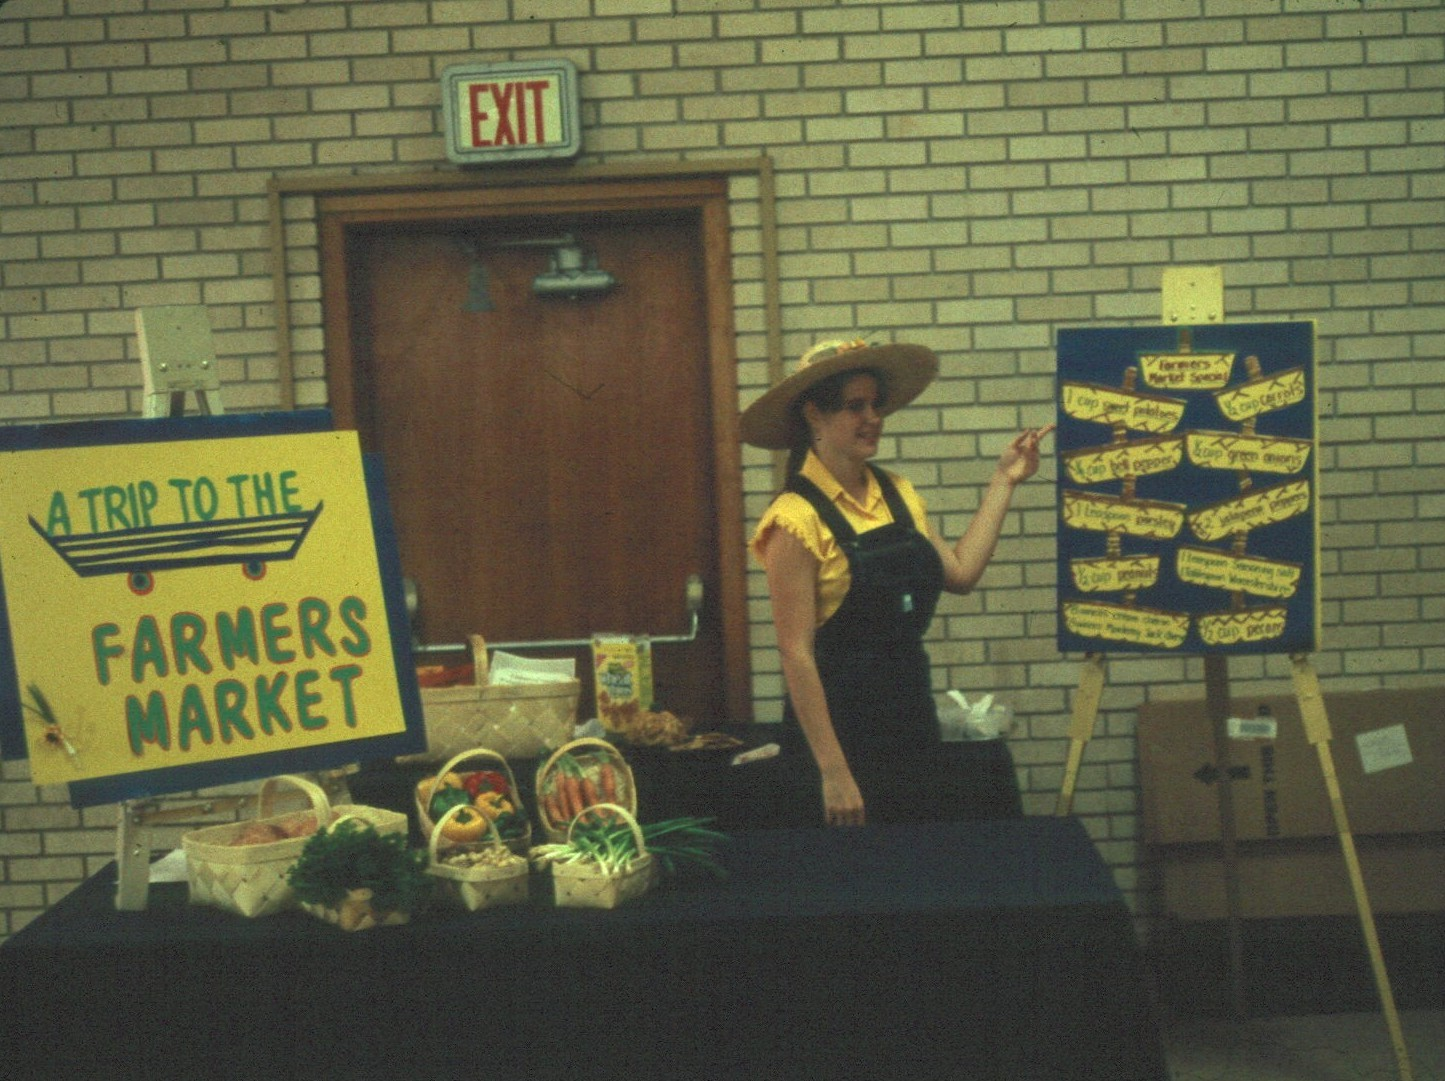 Horticulture Demonstrations Overview